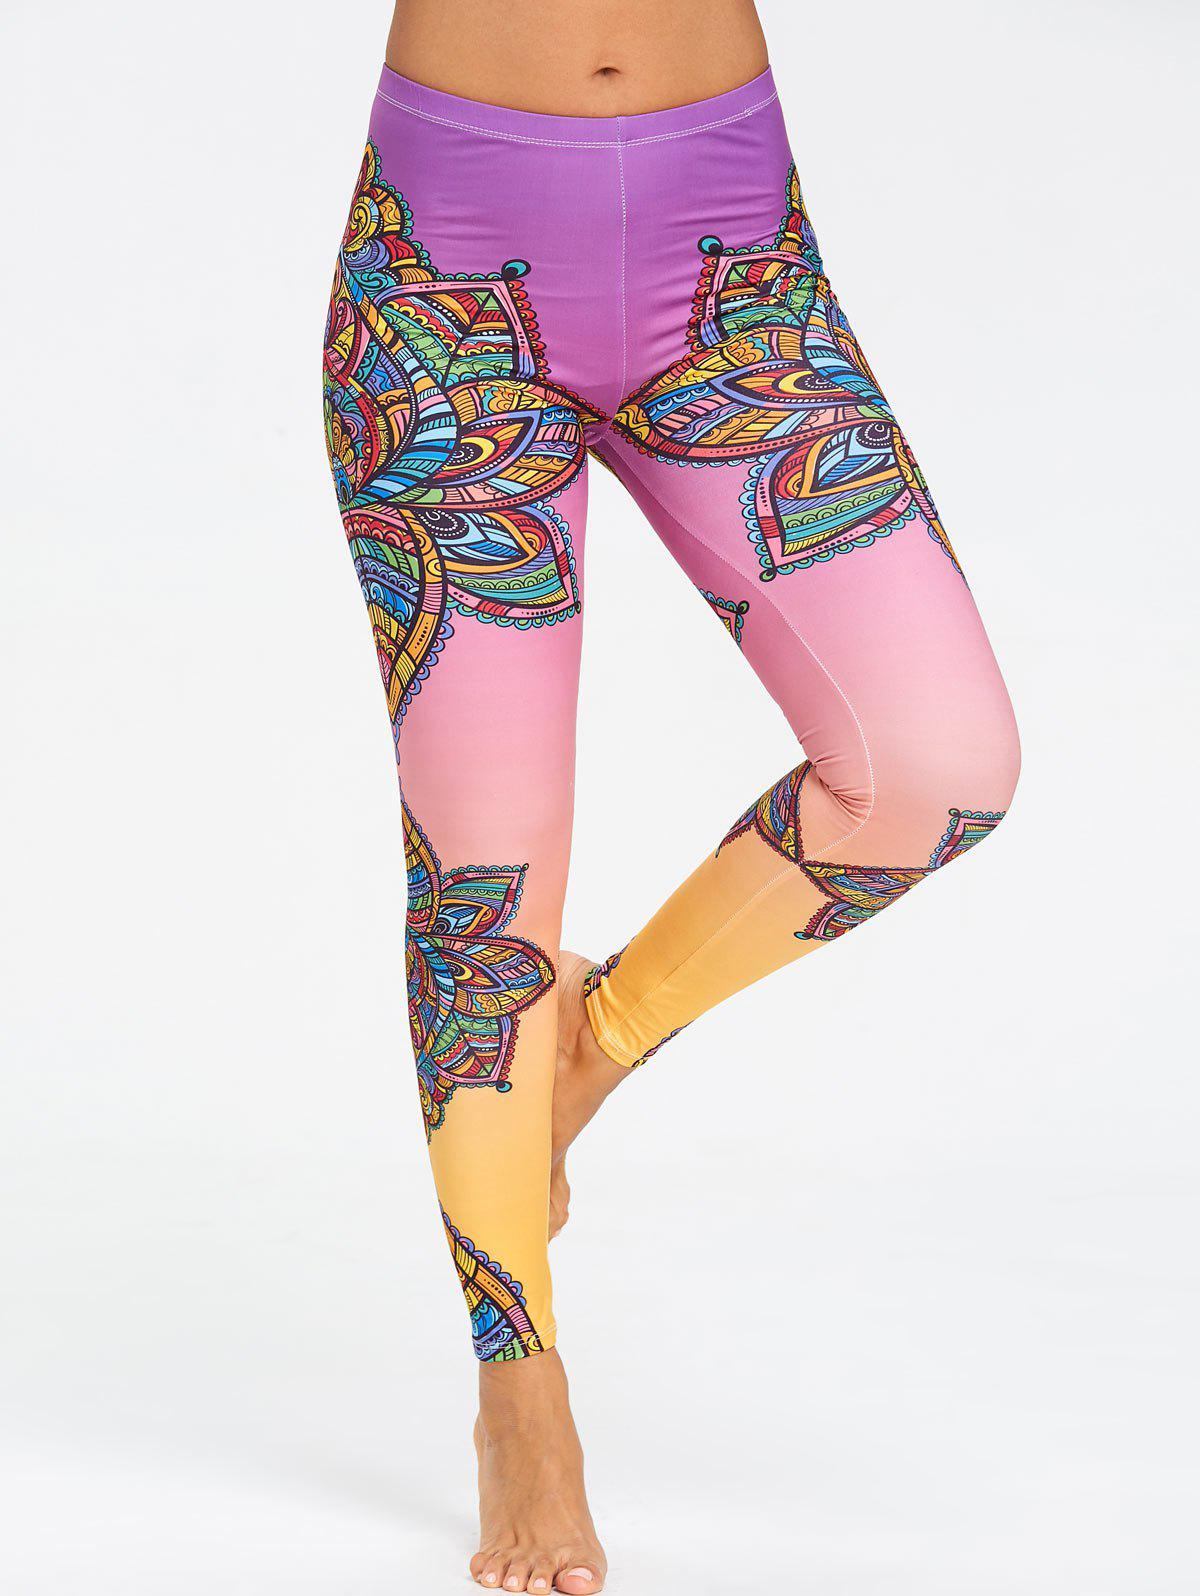 Mandalay Floral Printed Ombre Yoga Leggings - FLORAL XL